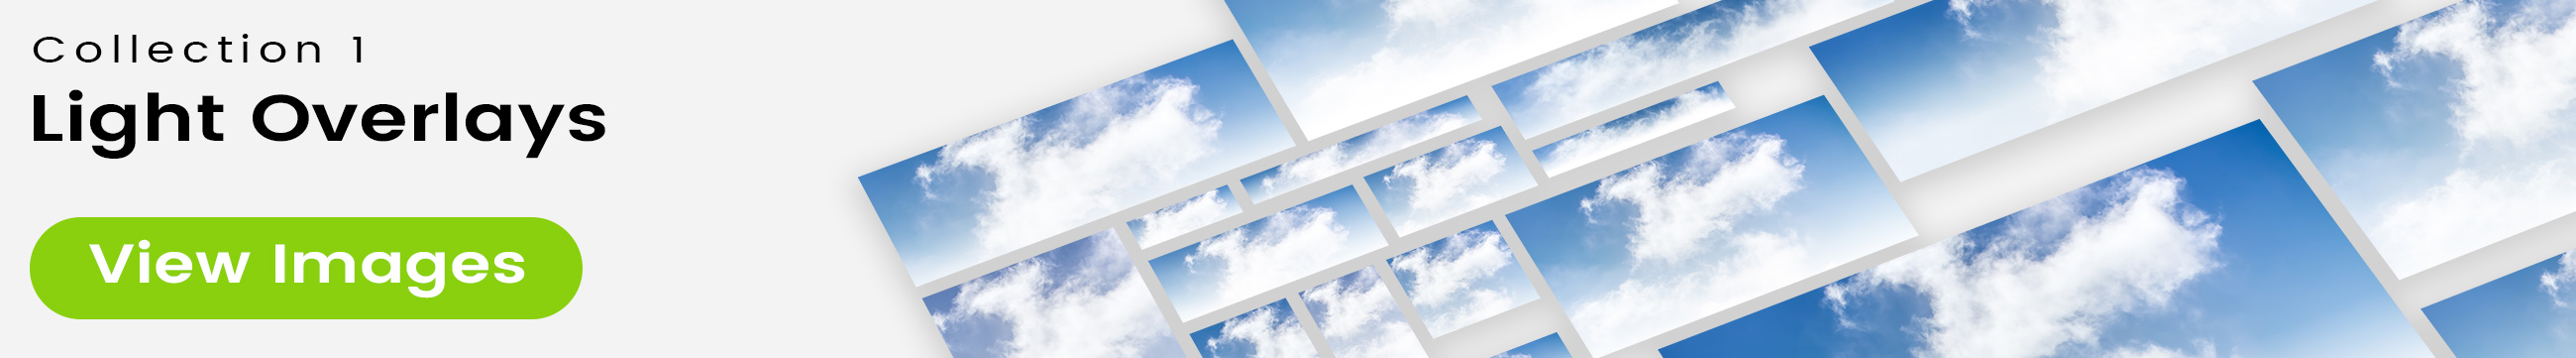 See 25 bonus images included with clouds stock image 9473. Collection 1 of 4 features a light overlay design.